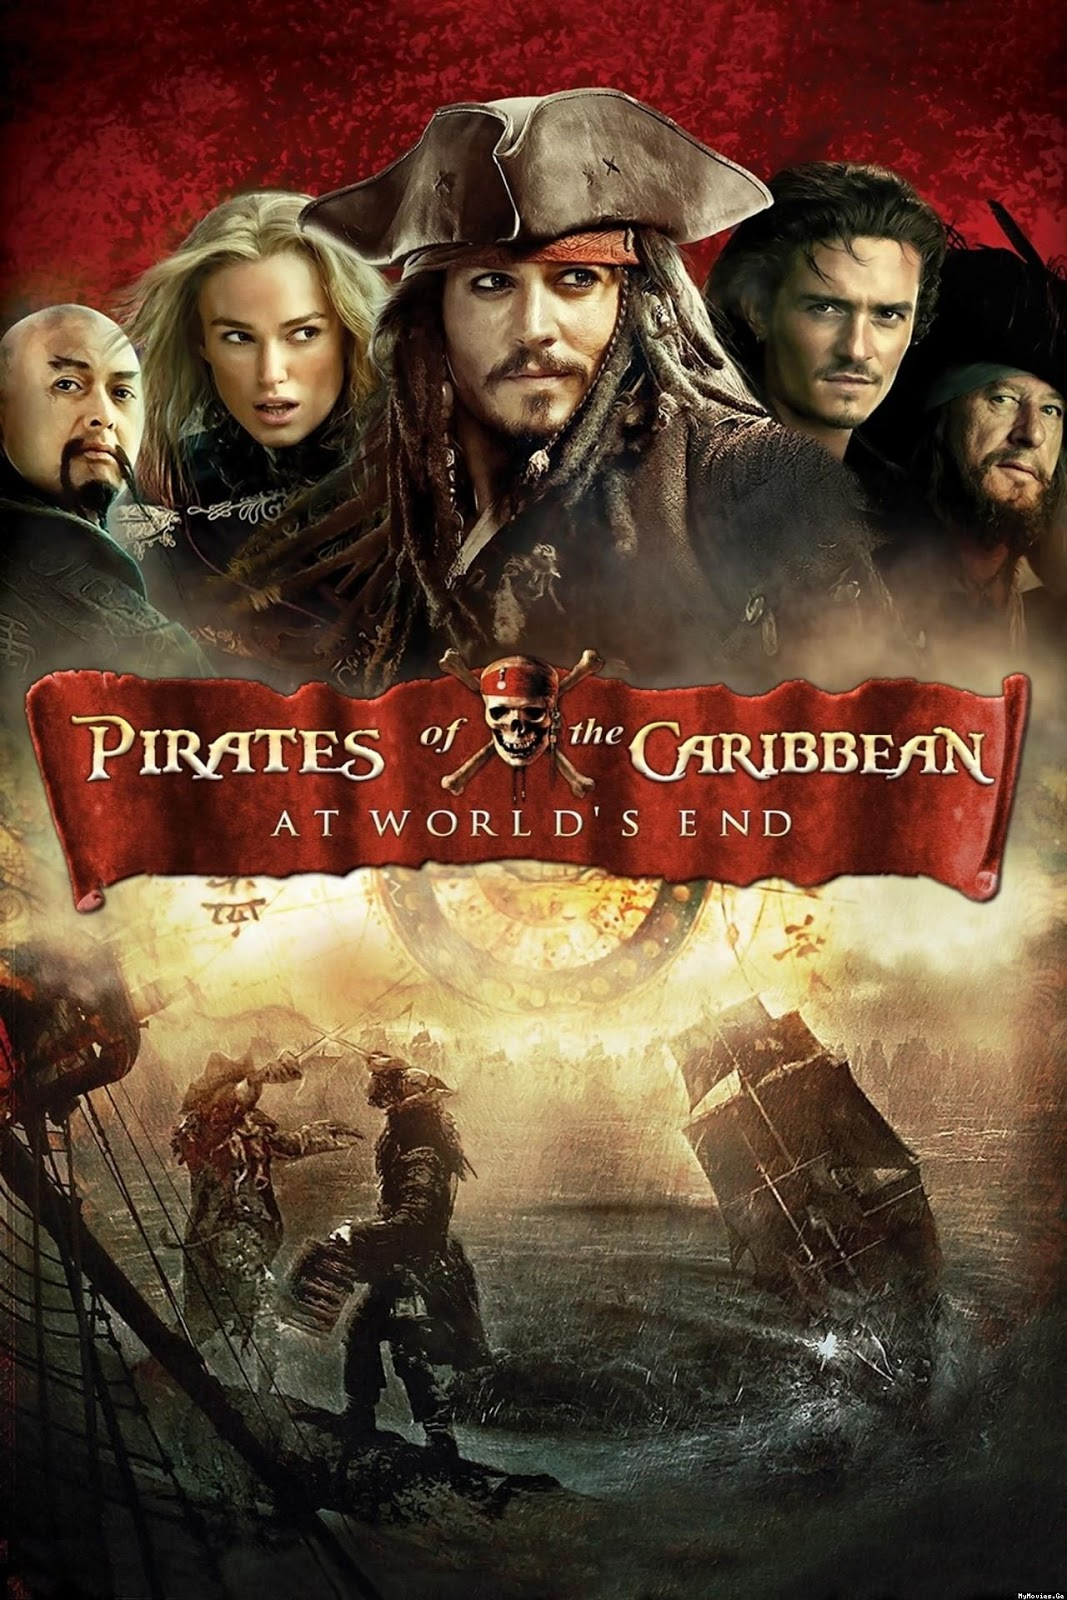 pirates of the caribbean 2 hd movie download in tamil